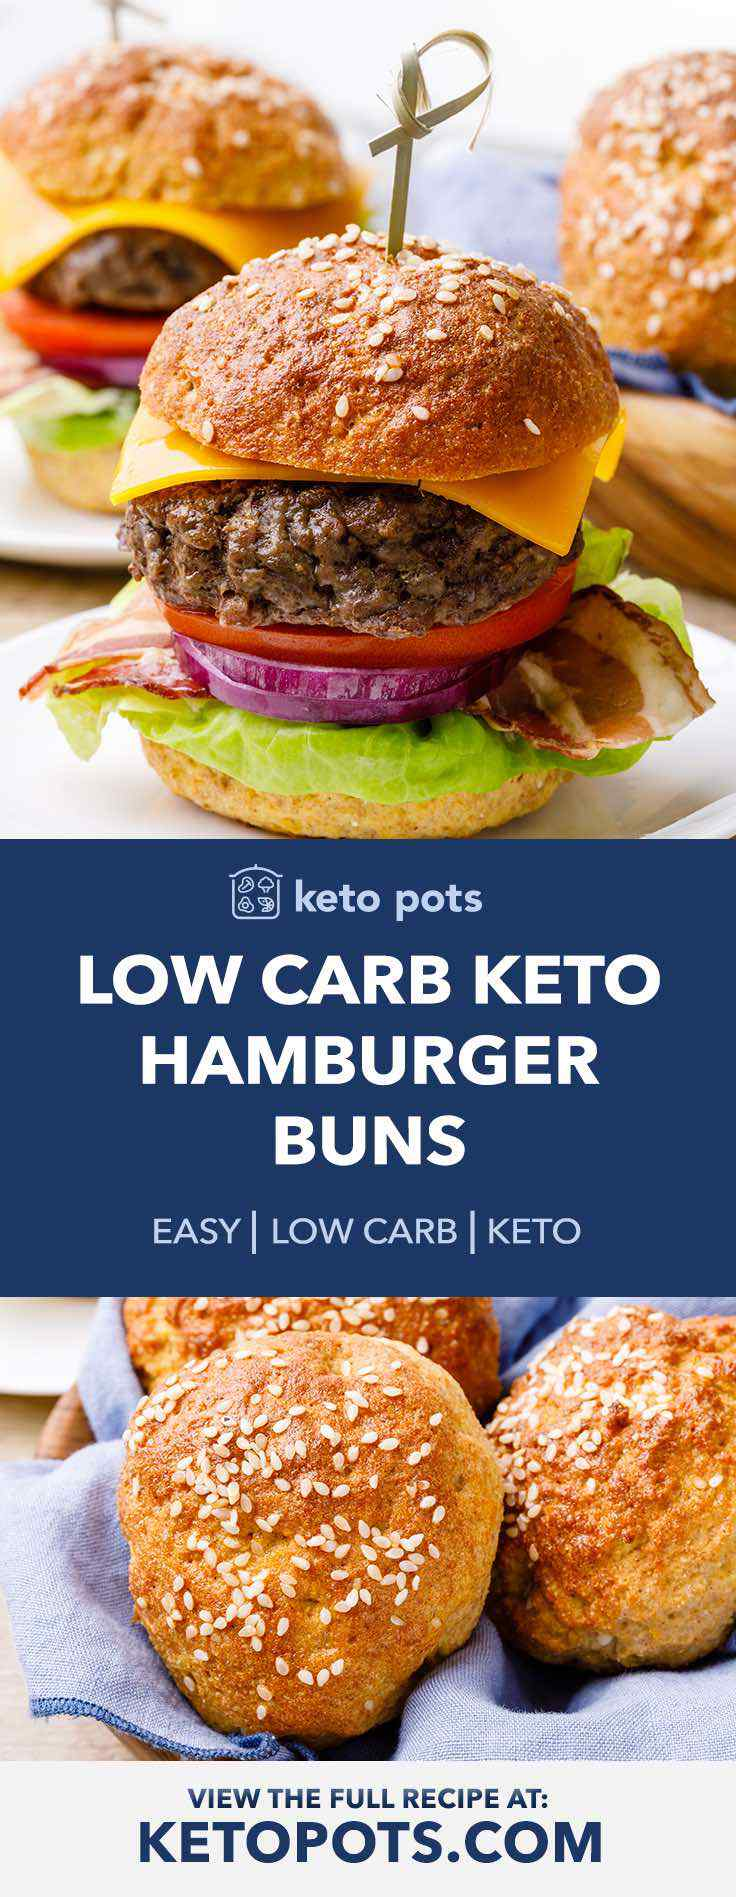 The best low carb keto hamburger buns.